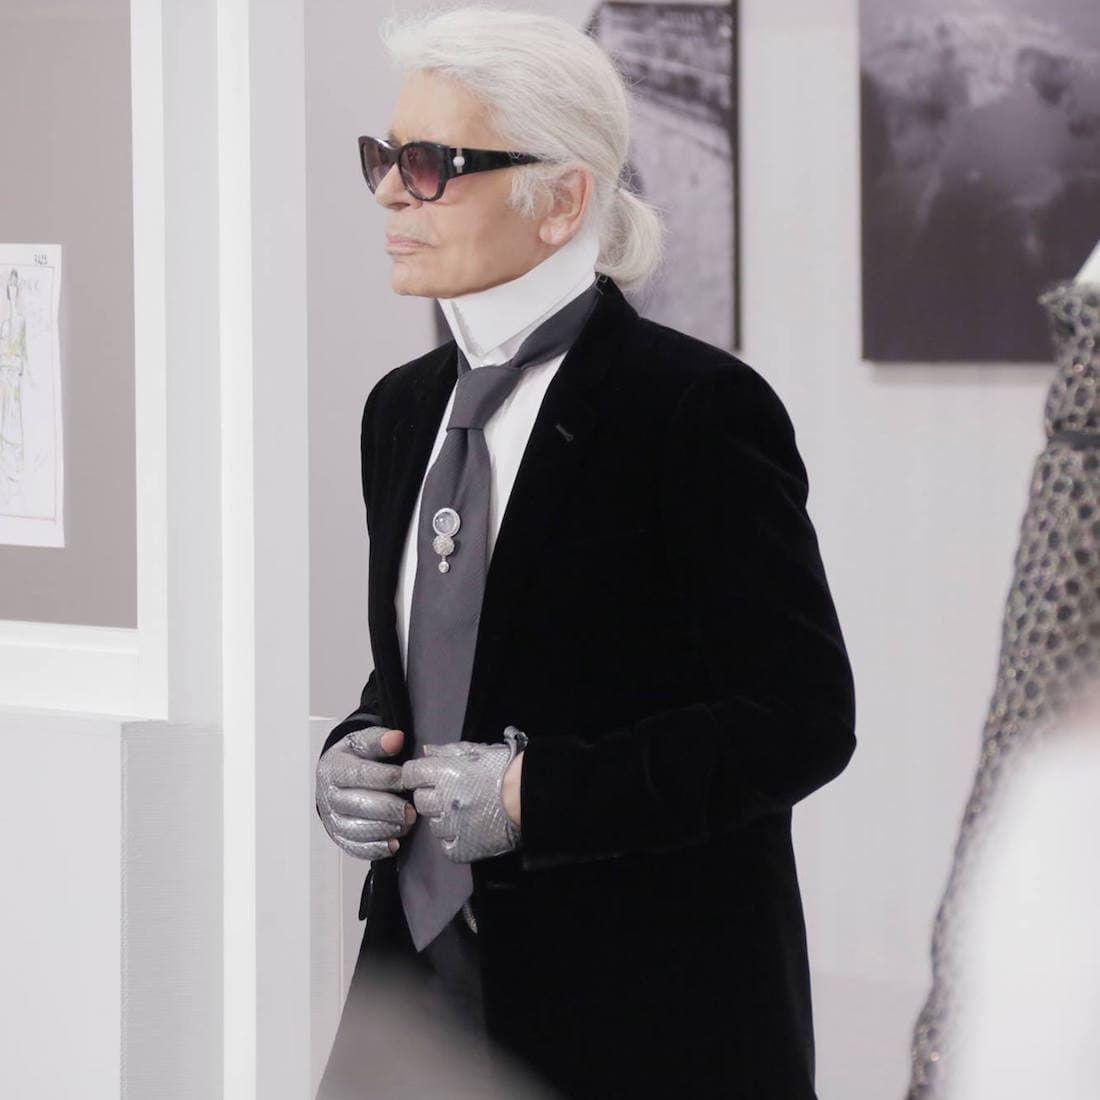 Pair Jewellery with a Suit: Chanel